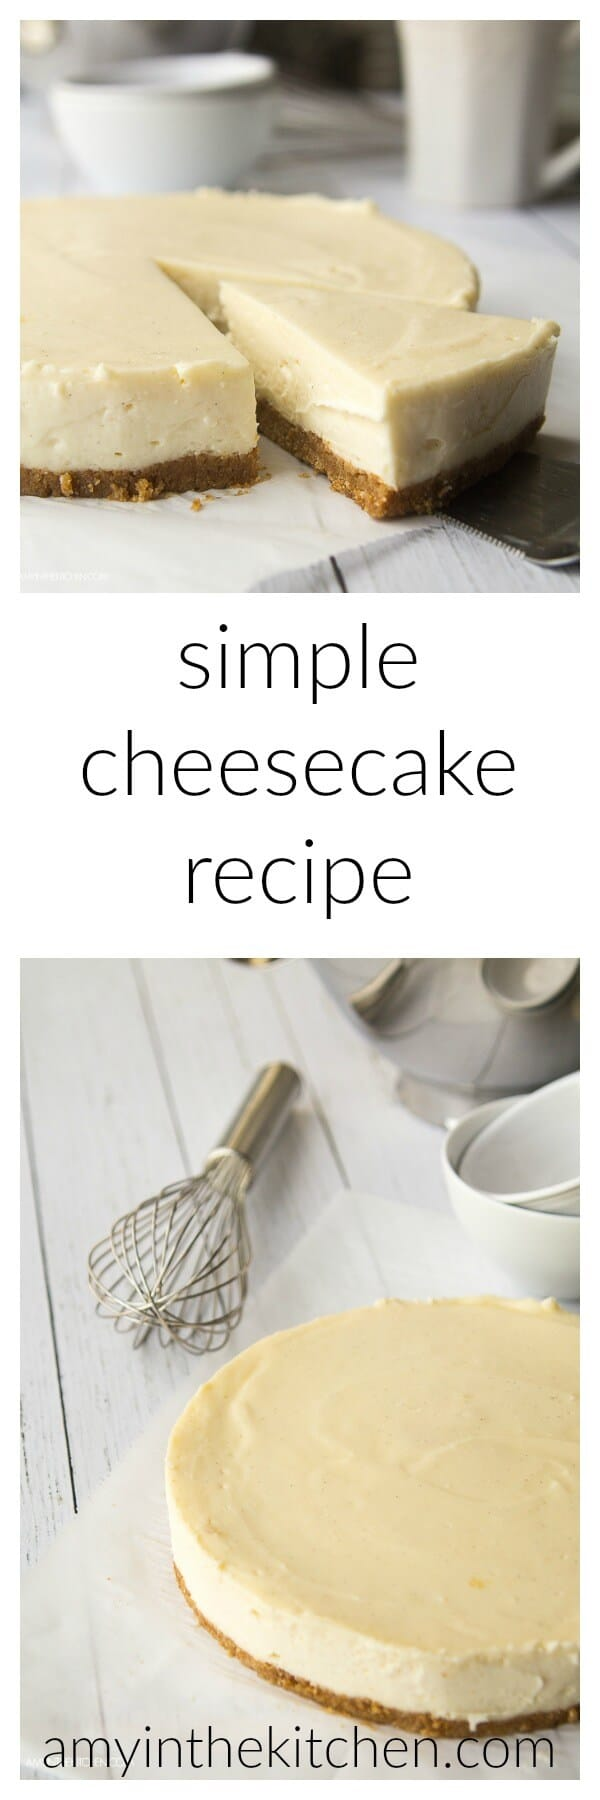 A simple cheesecake recipe that anyone can make. So easy! AmyintheKitchen.com